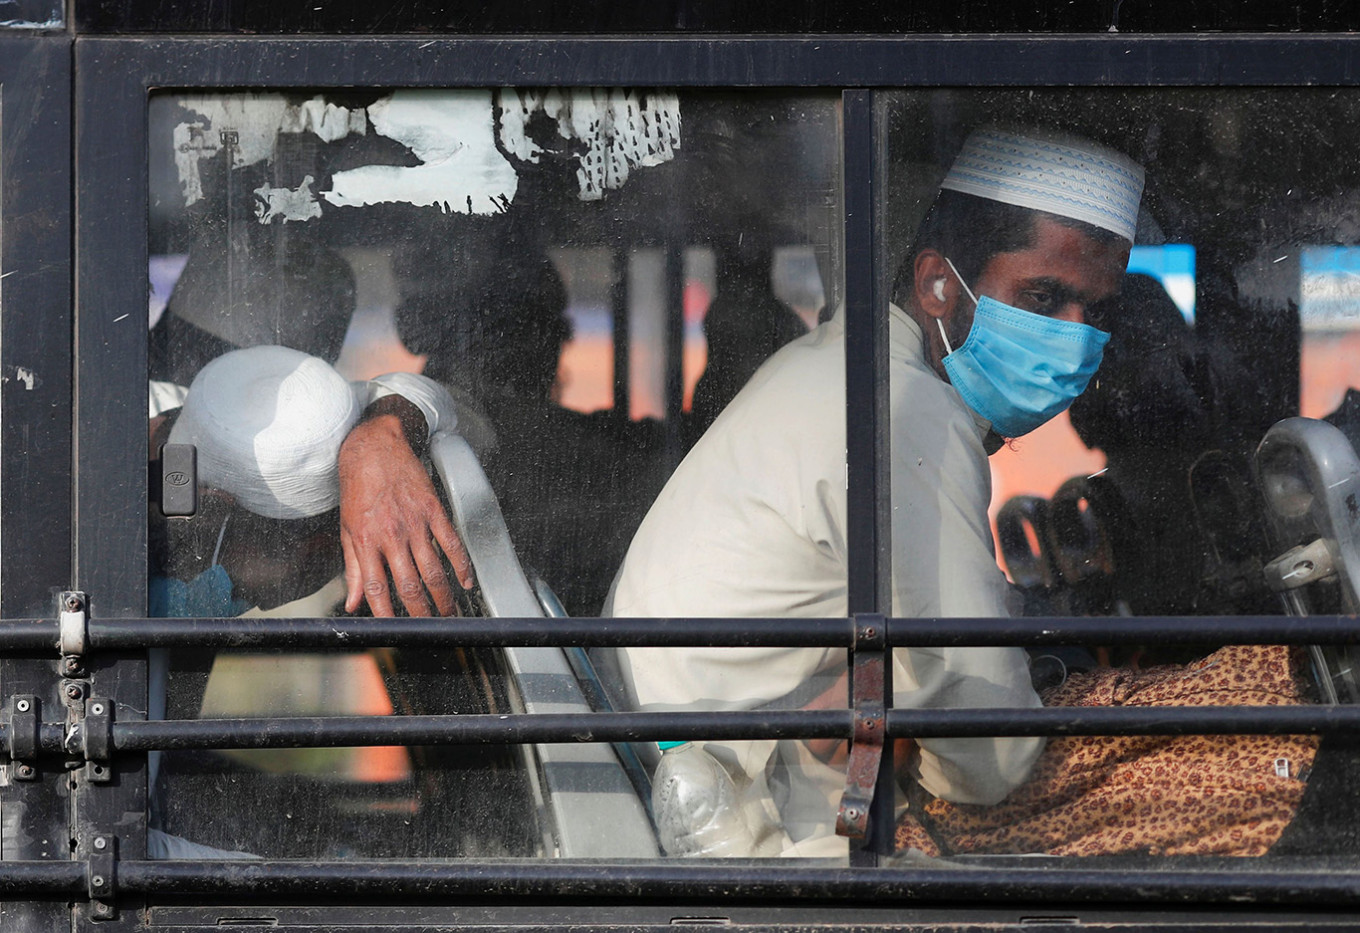 World Bank approves $1 billion emergency fund for India to fight coronavirus